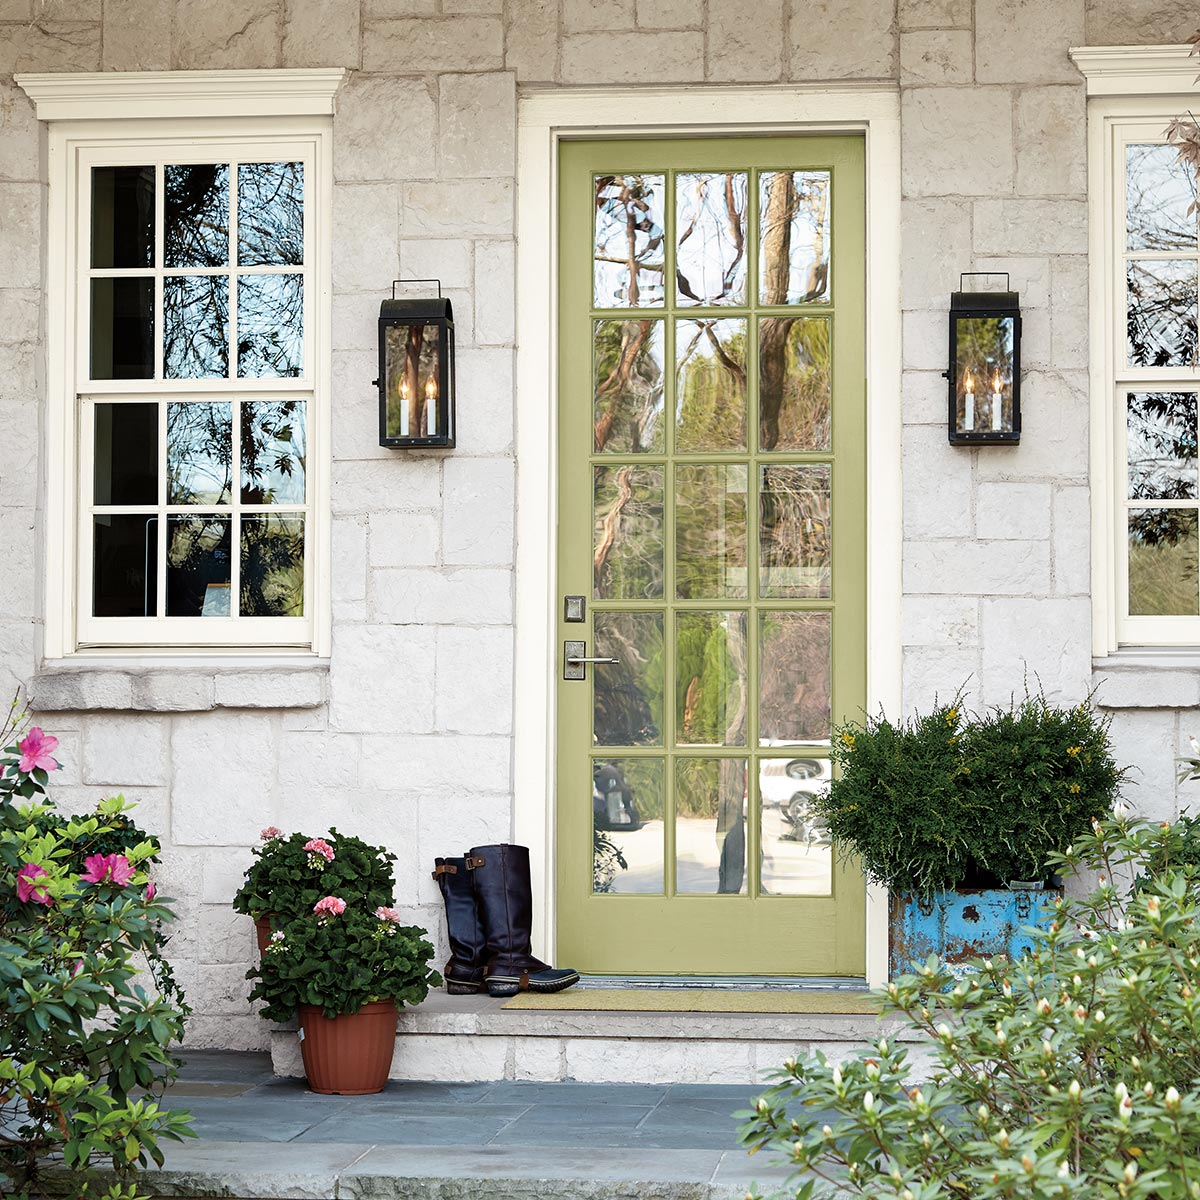 Behr 2020 COY, Back to Nature, Front Door, green paint color